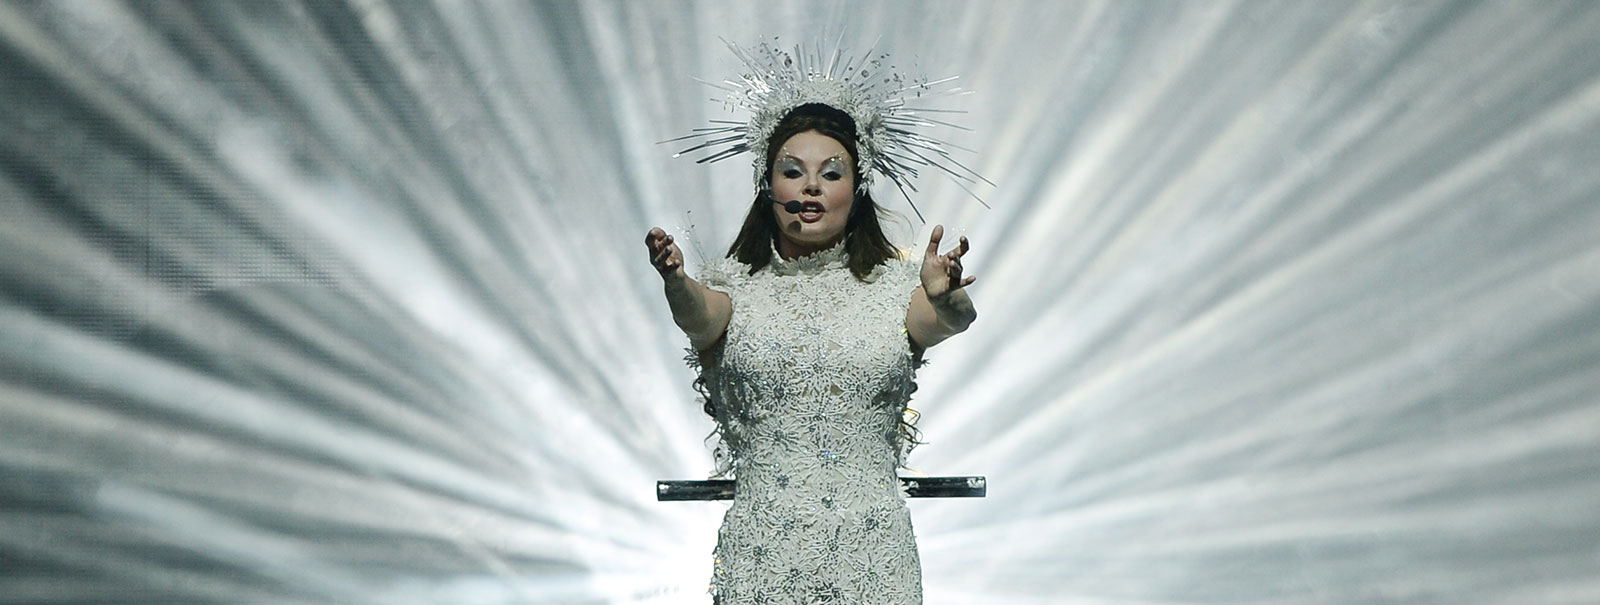 Sarah Brightman 'Live from International Space Station'